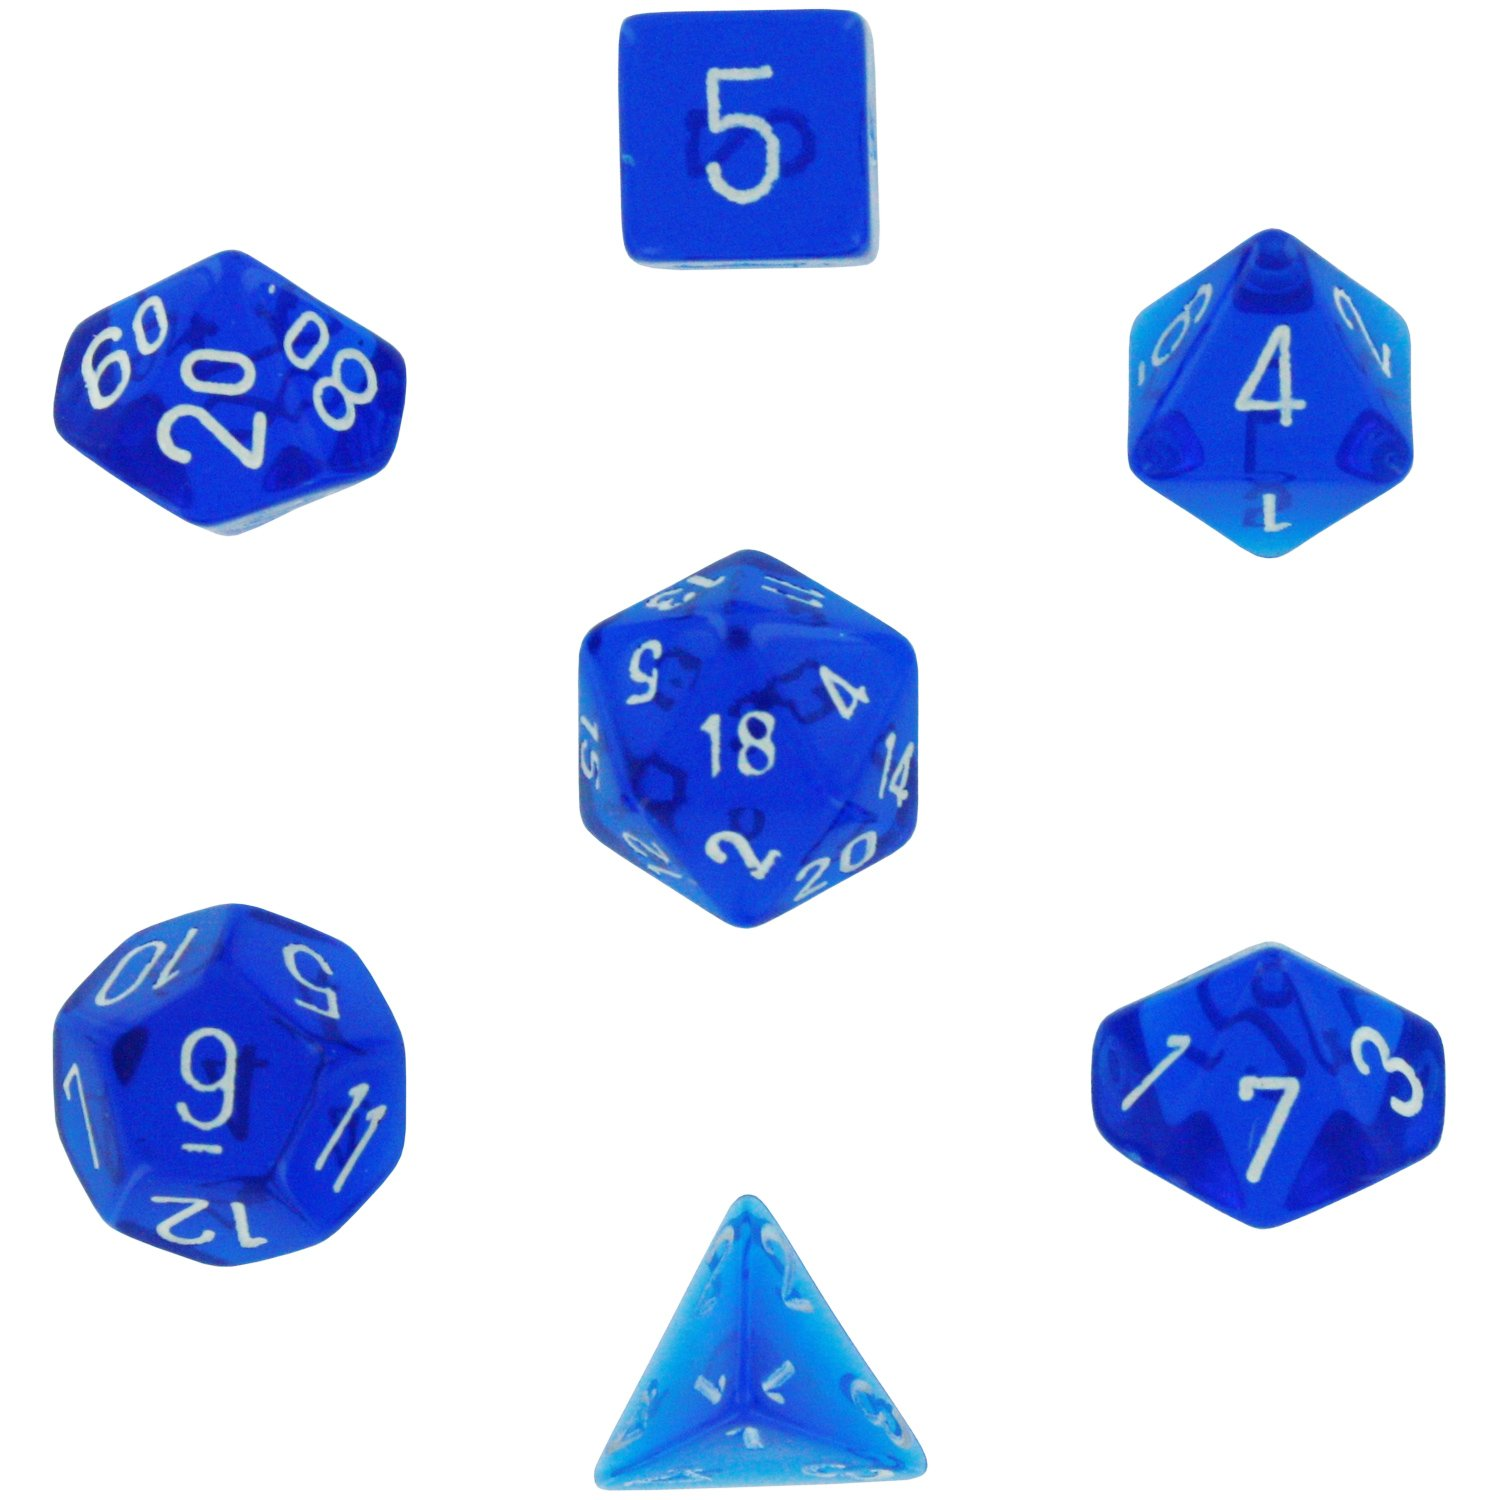 高い素材 Chessex Manufacturing 23006 7-Die Polyhedral Set Manufacturing Blue Translucent Set With White Translucent B0015ISHD8, 上石津町:b07da243 --- cliente.opweb0005.servidorwebfacil.com